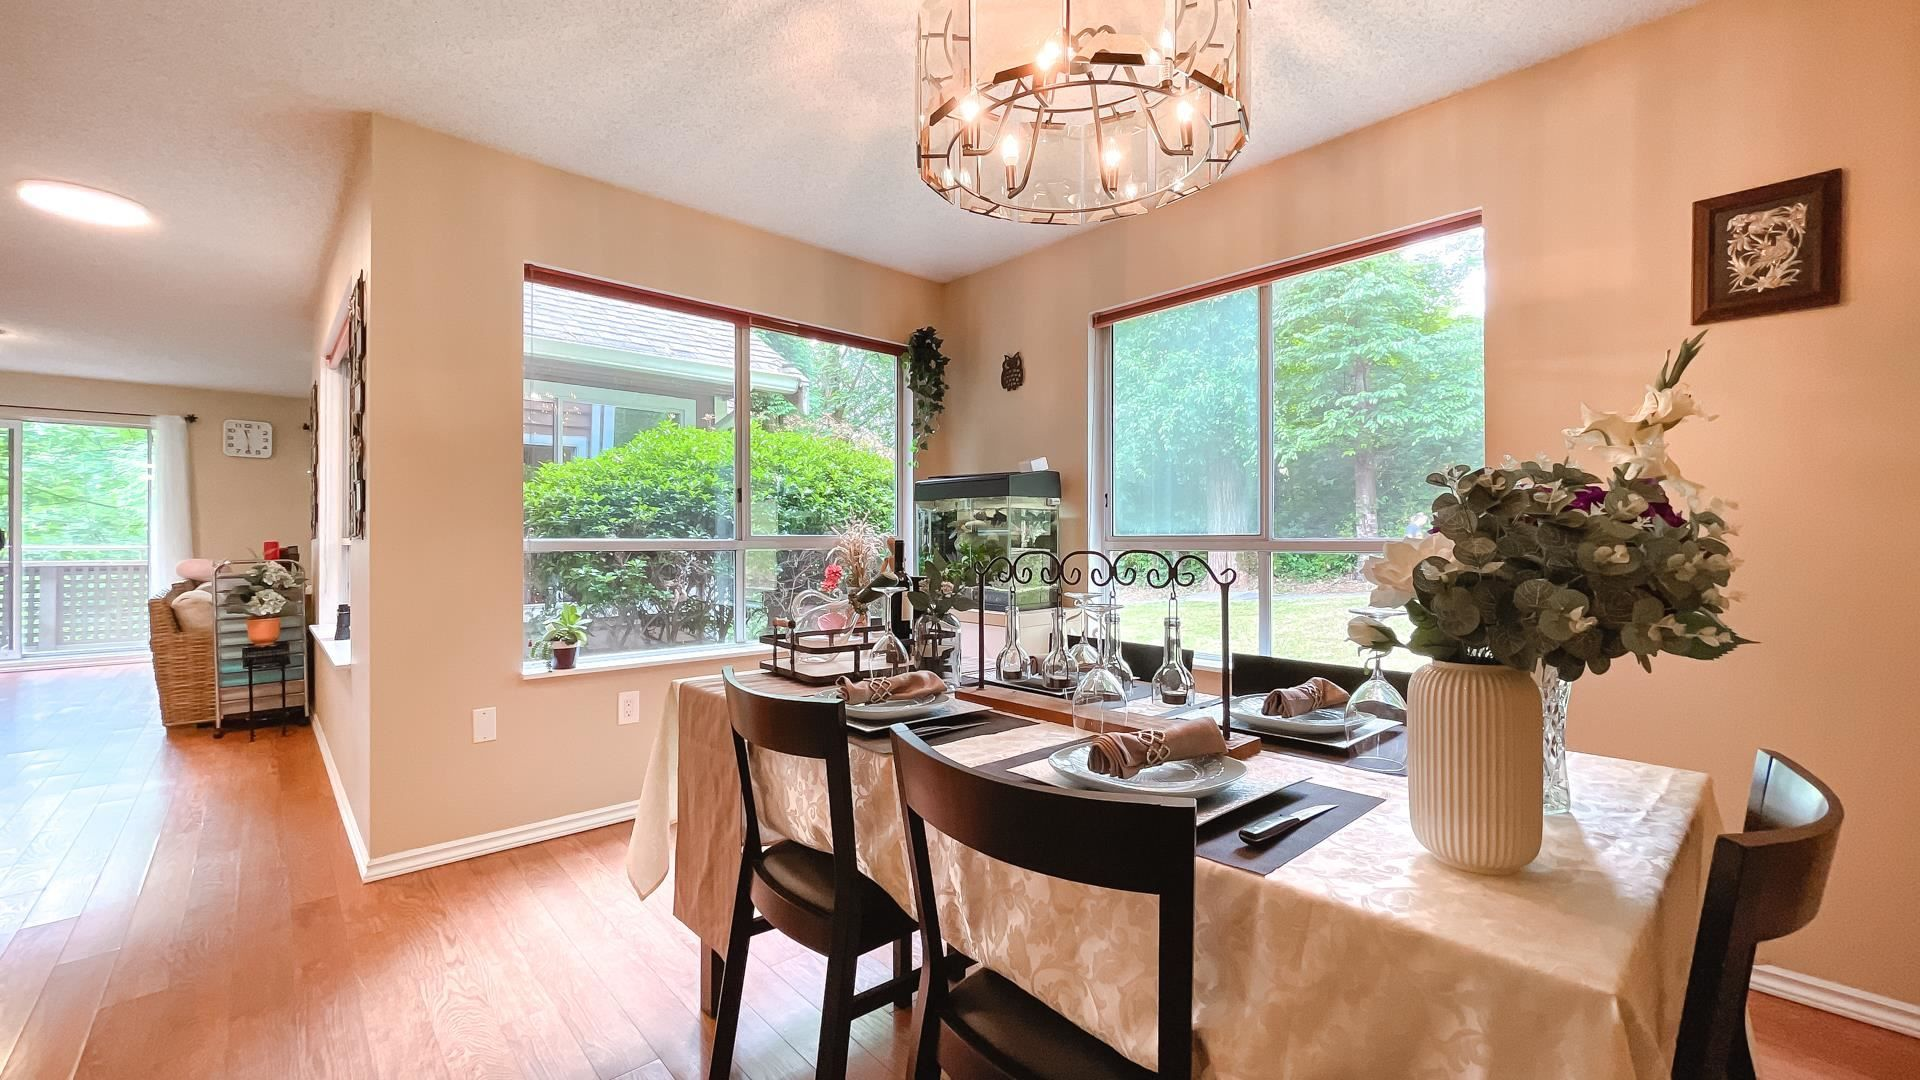 Photo 7: Photos: 66 9000 ASH GROVE CRESCENT in Burnaby: Forest Hills BN Townhouse for sale (Burnaby North)  : MLS®# R2603744